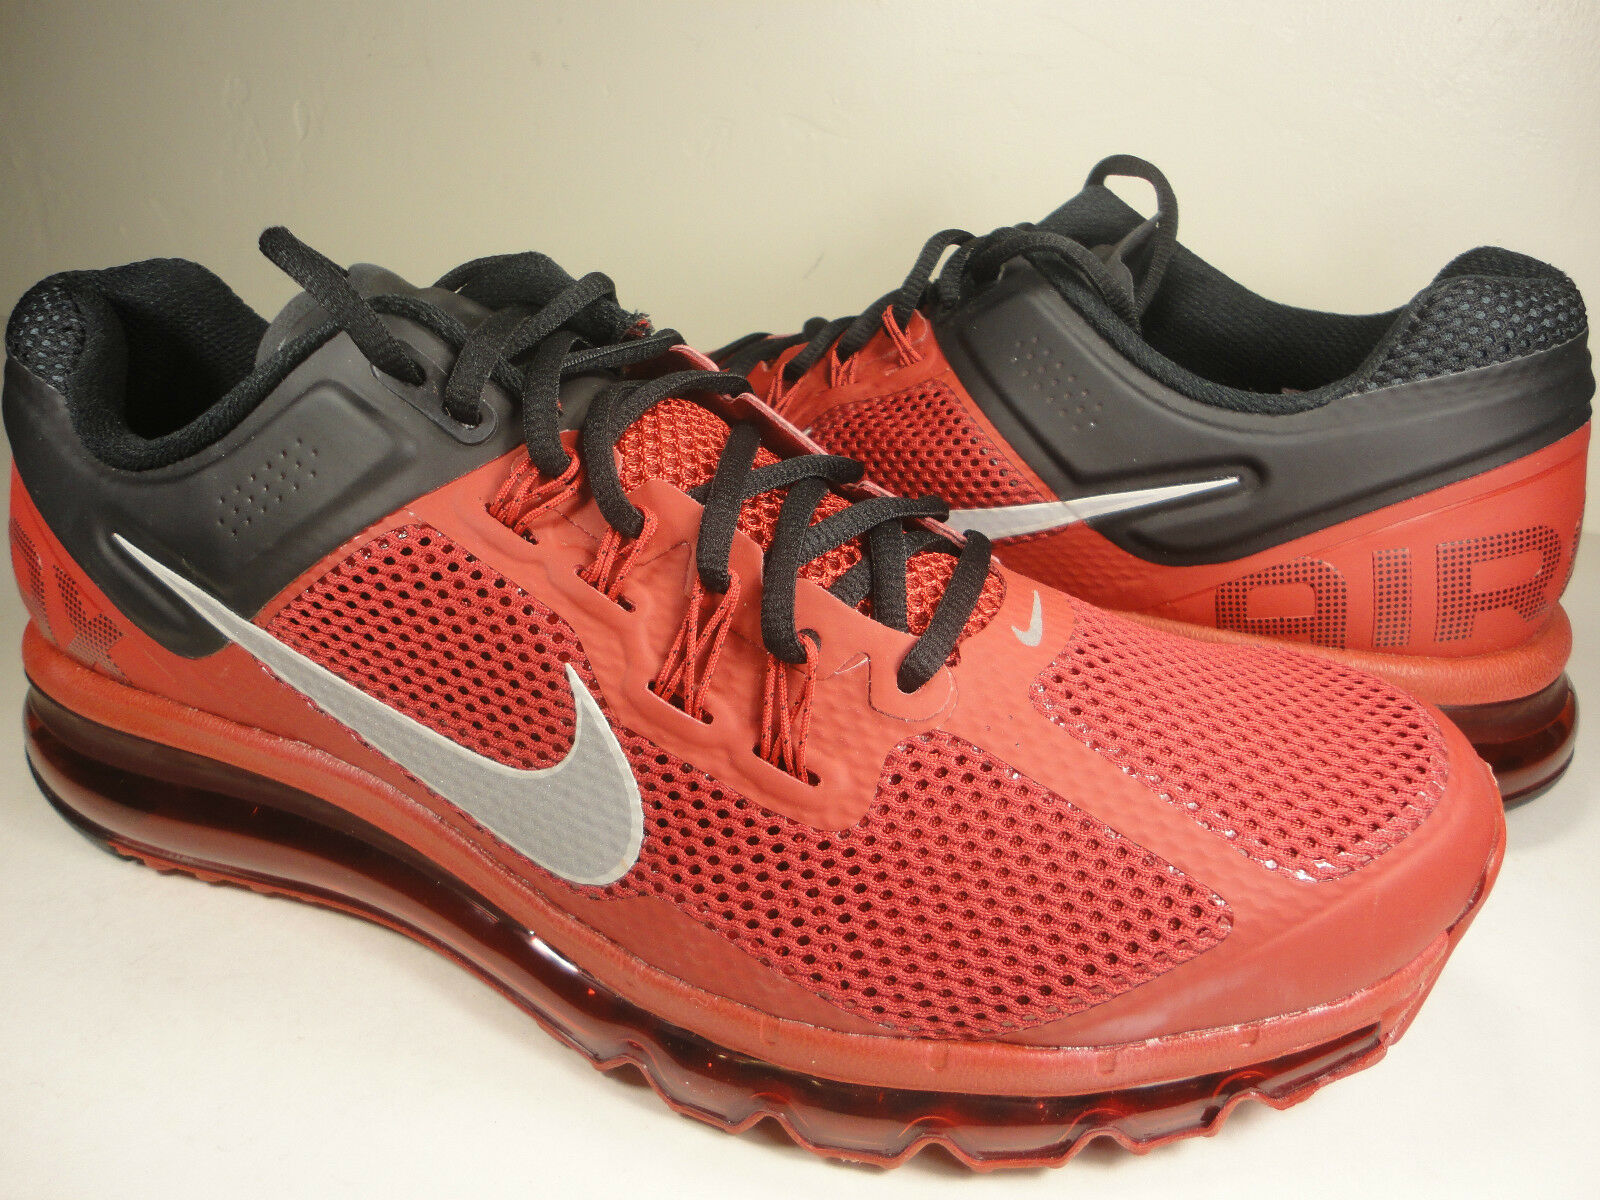 Nike Air Max+ 2018 Gym Red Reflect Silver Black Price reduction New shoes for men and women, limited time discount